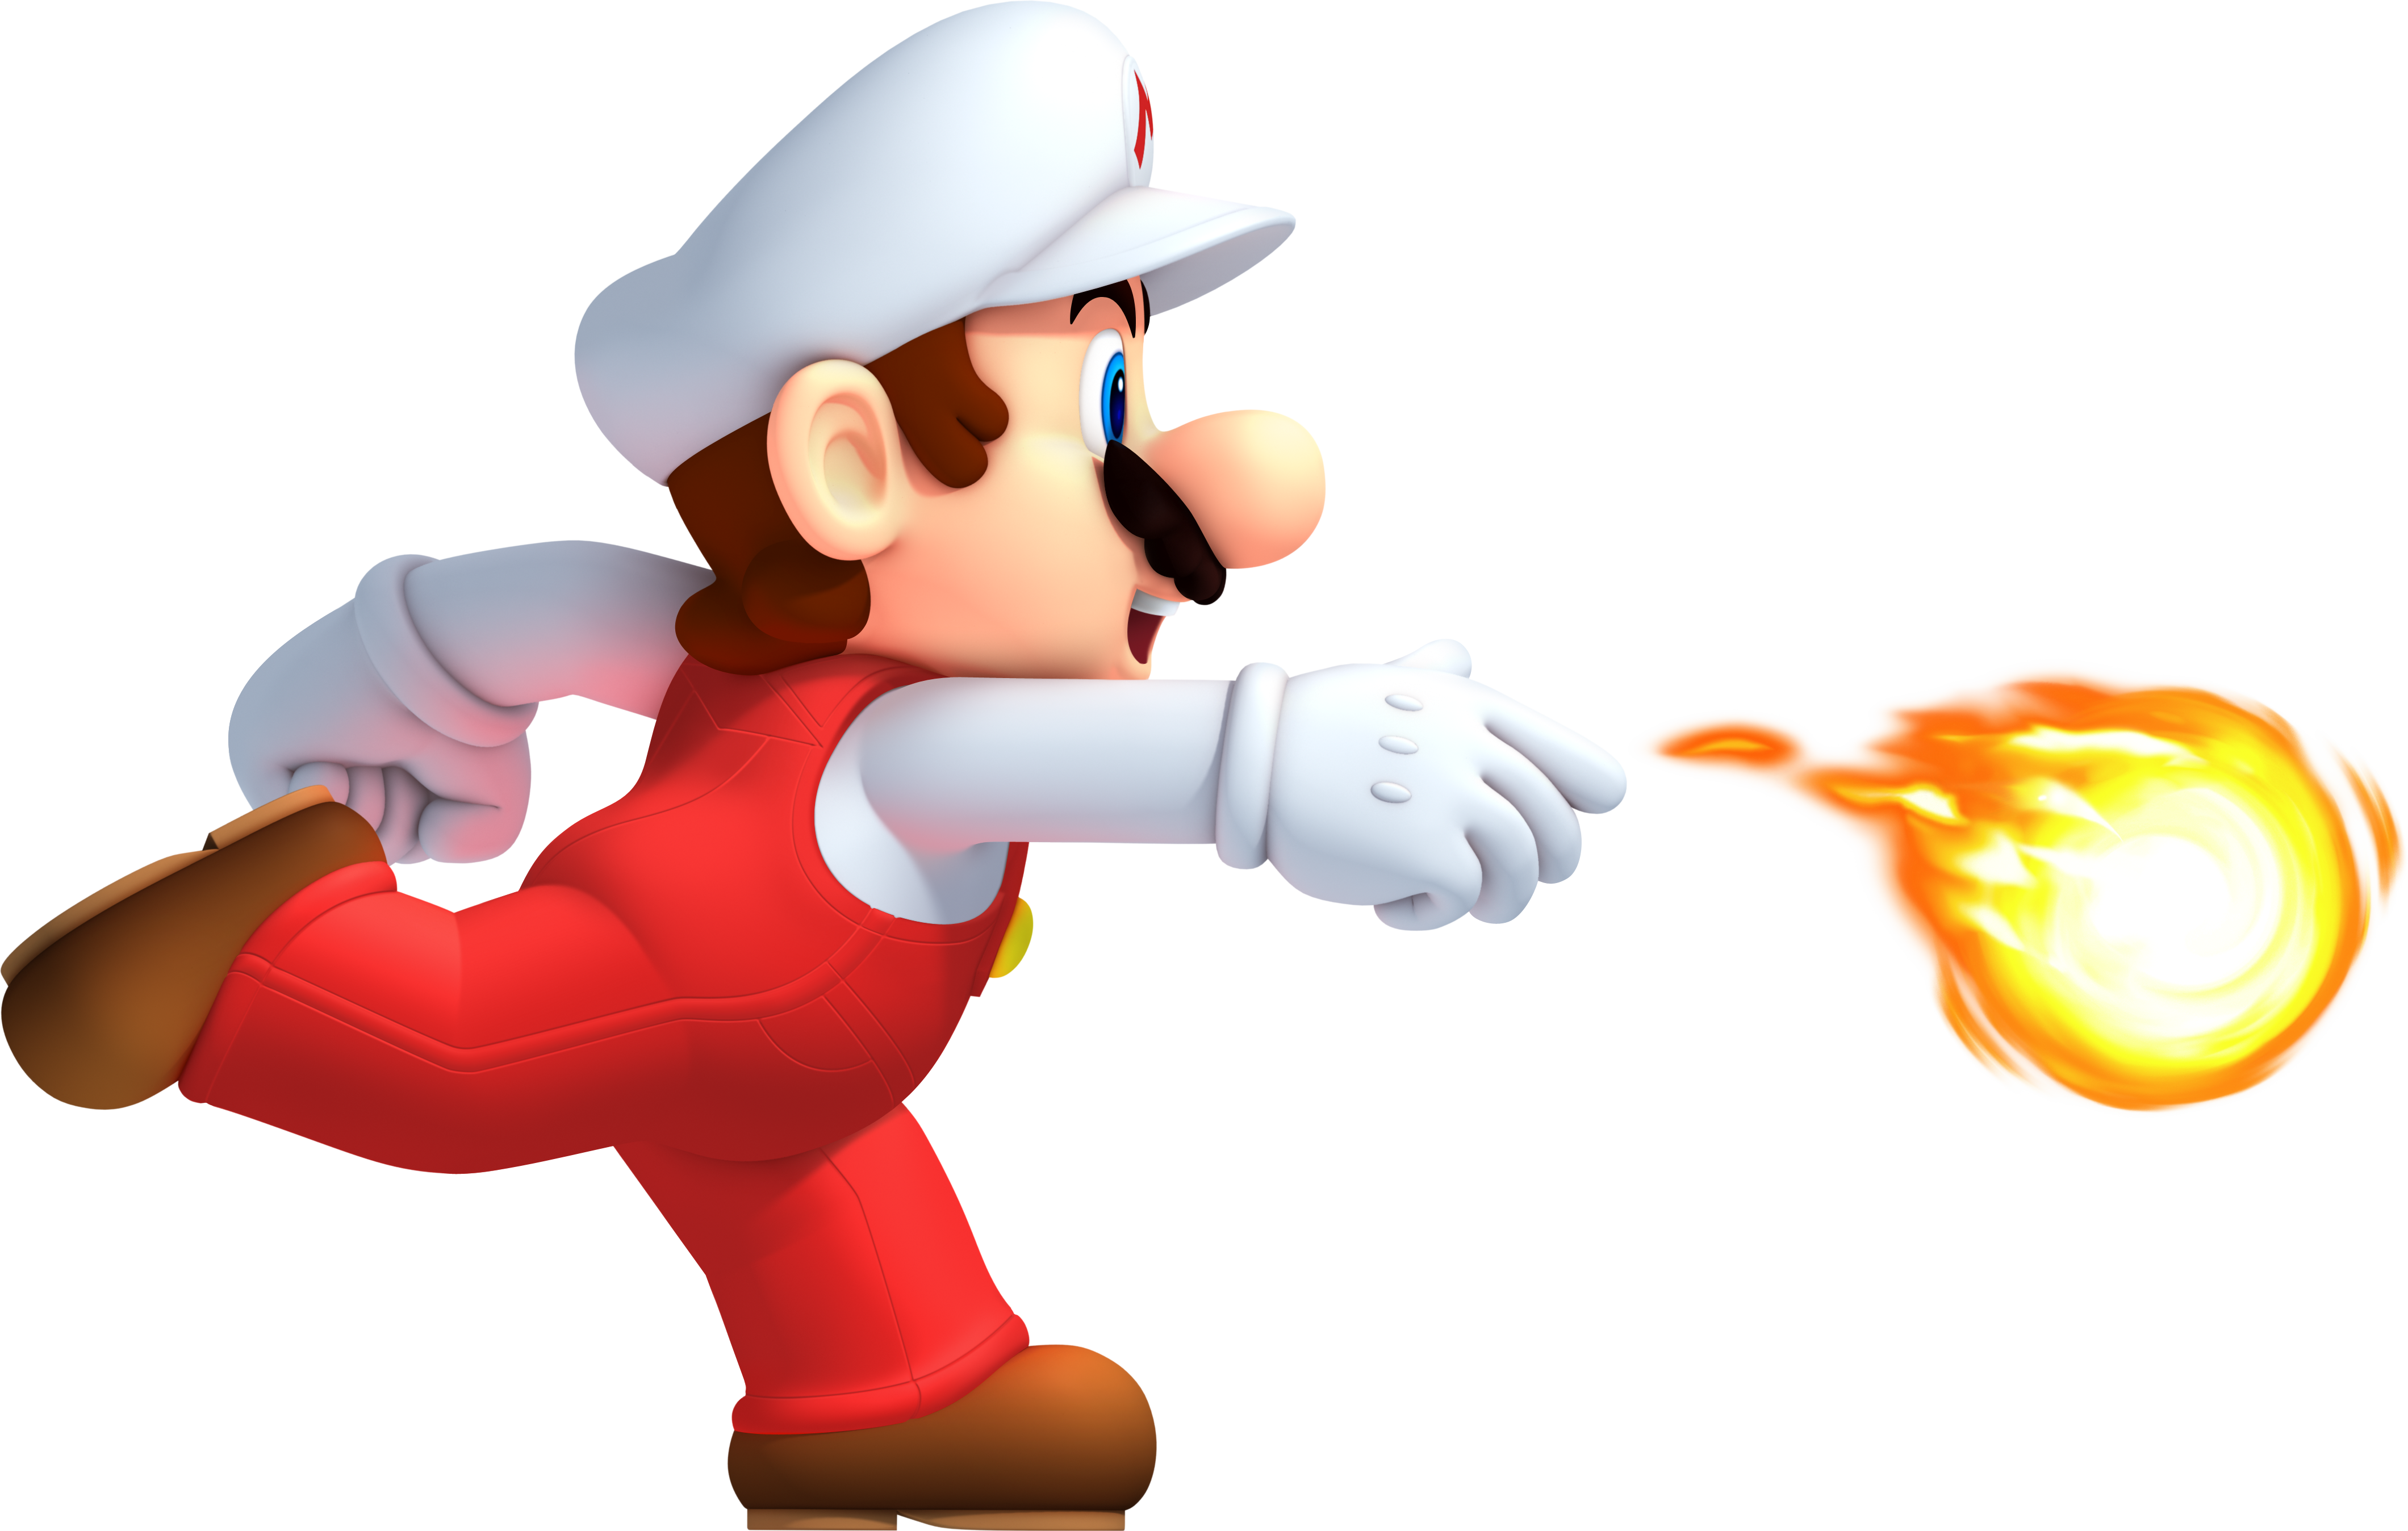 Person clipart fire. Mario running png image